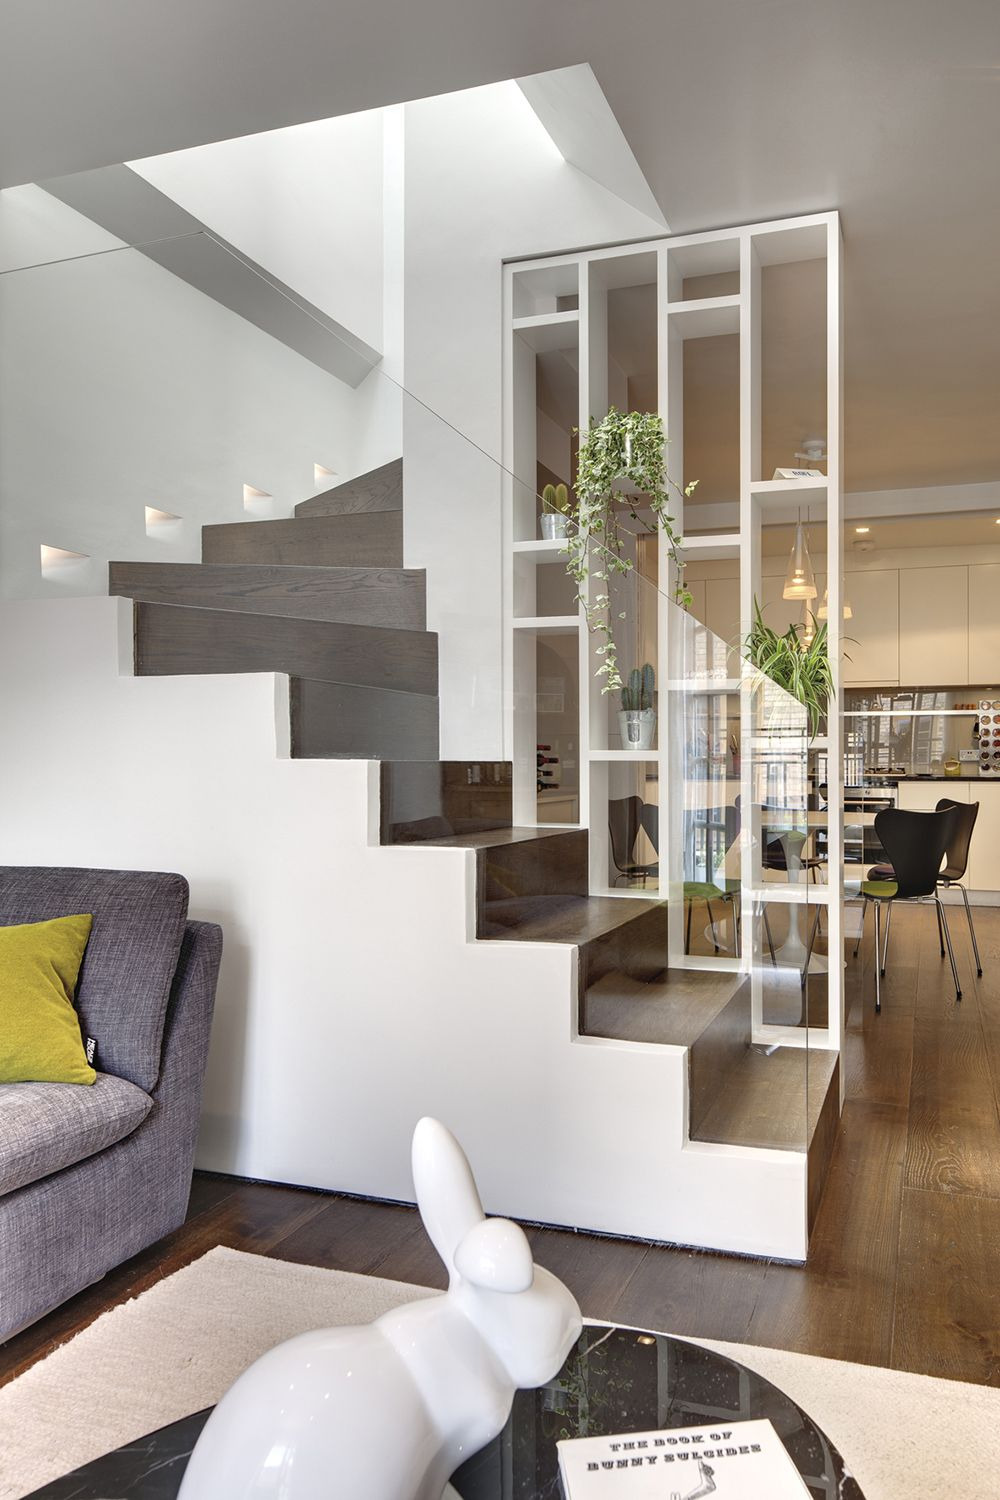 Interior Partition Wall Ideas Best Of 15 original Ideas for Room Partition that You Should Not